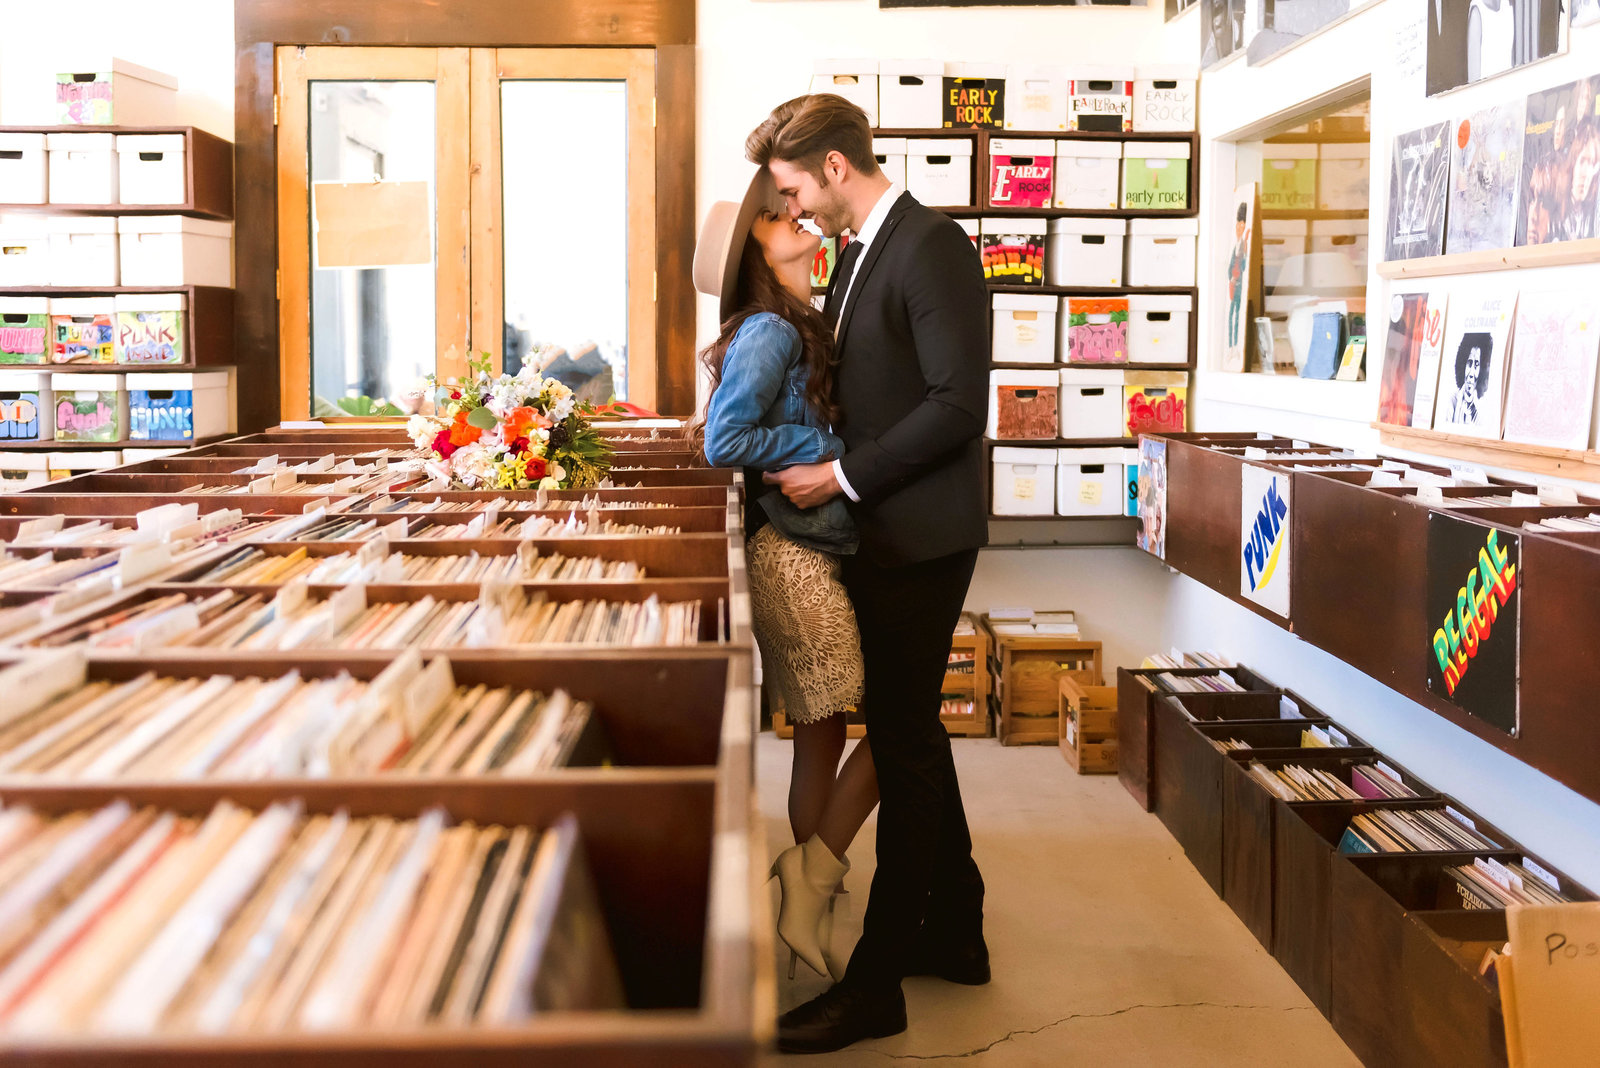 Detroit engagement photos of a bride and groom in a record store | Erin Schmidt Photography